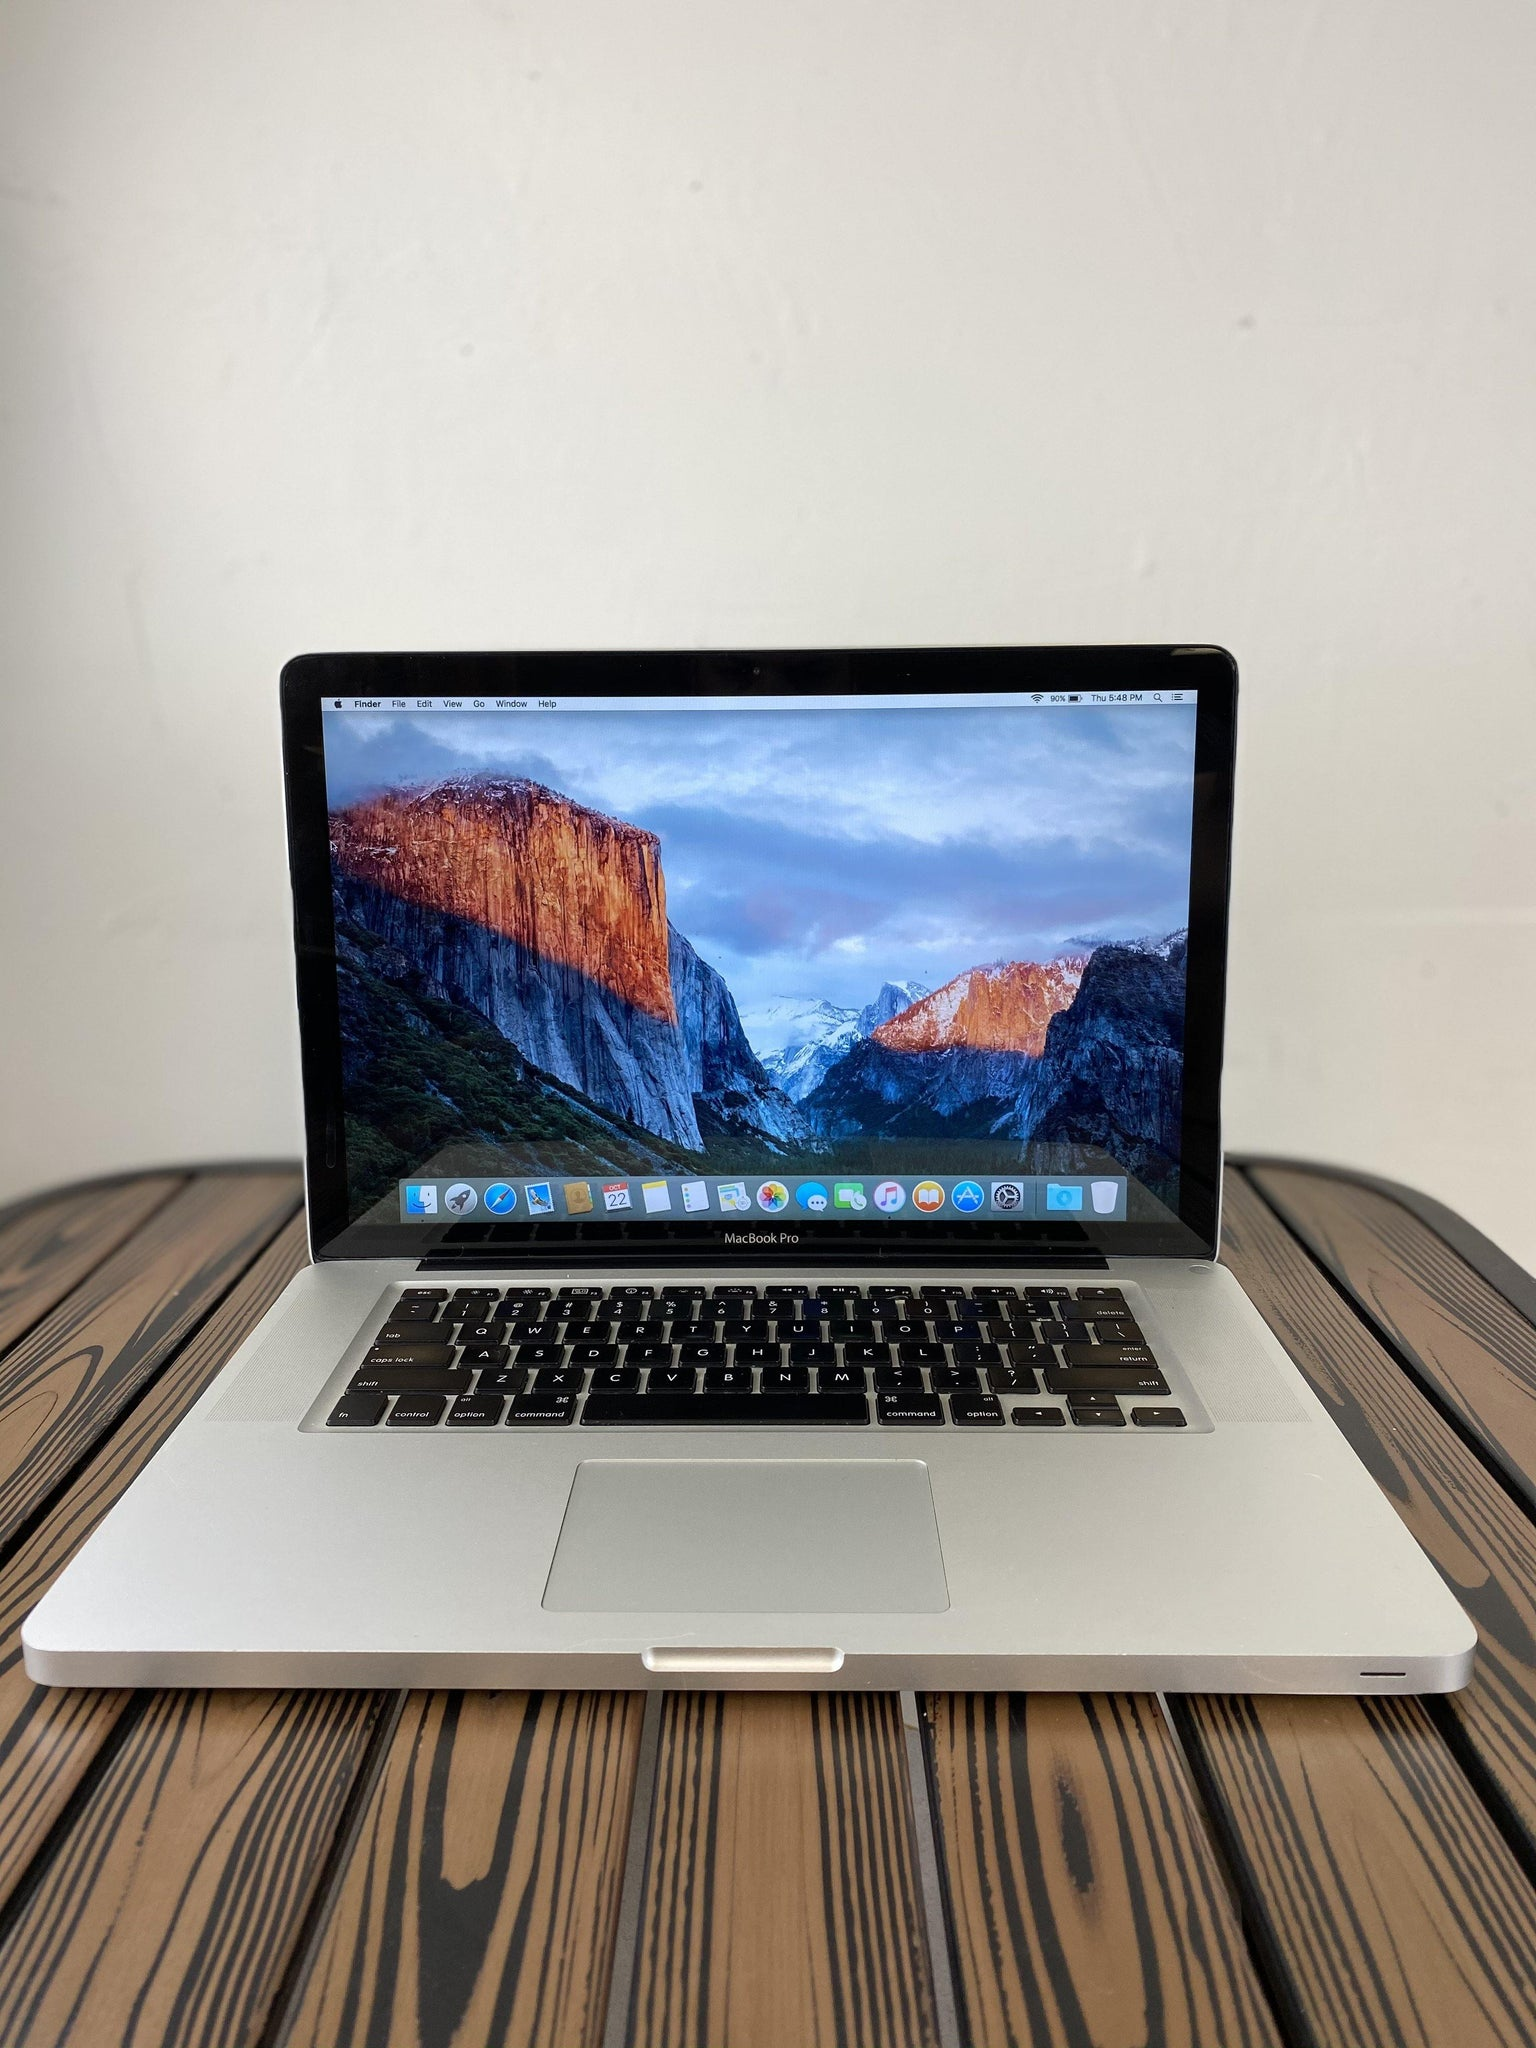 MacBook Pro (15-inch, Late 2011) - intel Core i7 @2.5 GHz - 16GB Ram - 250GB SDD